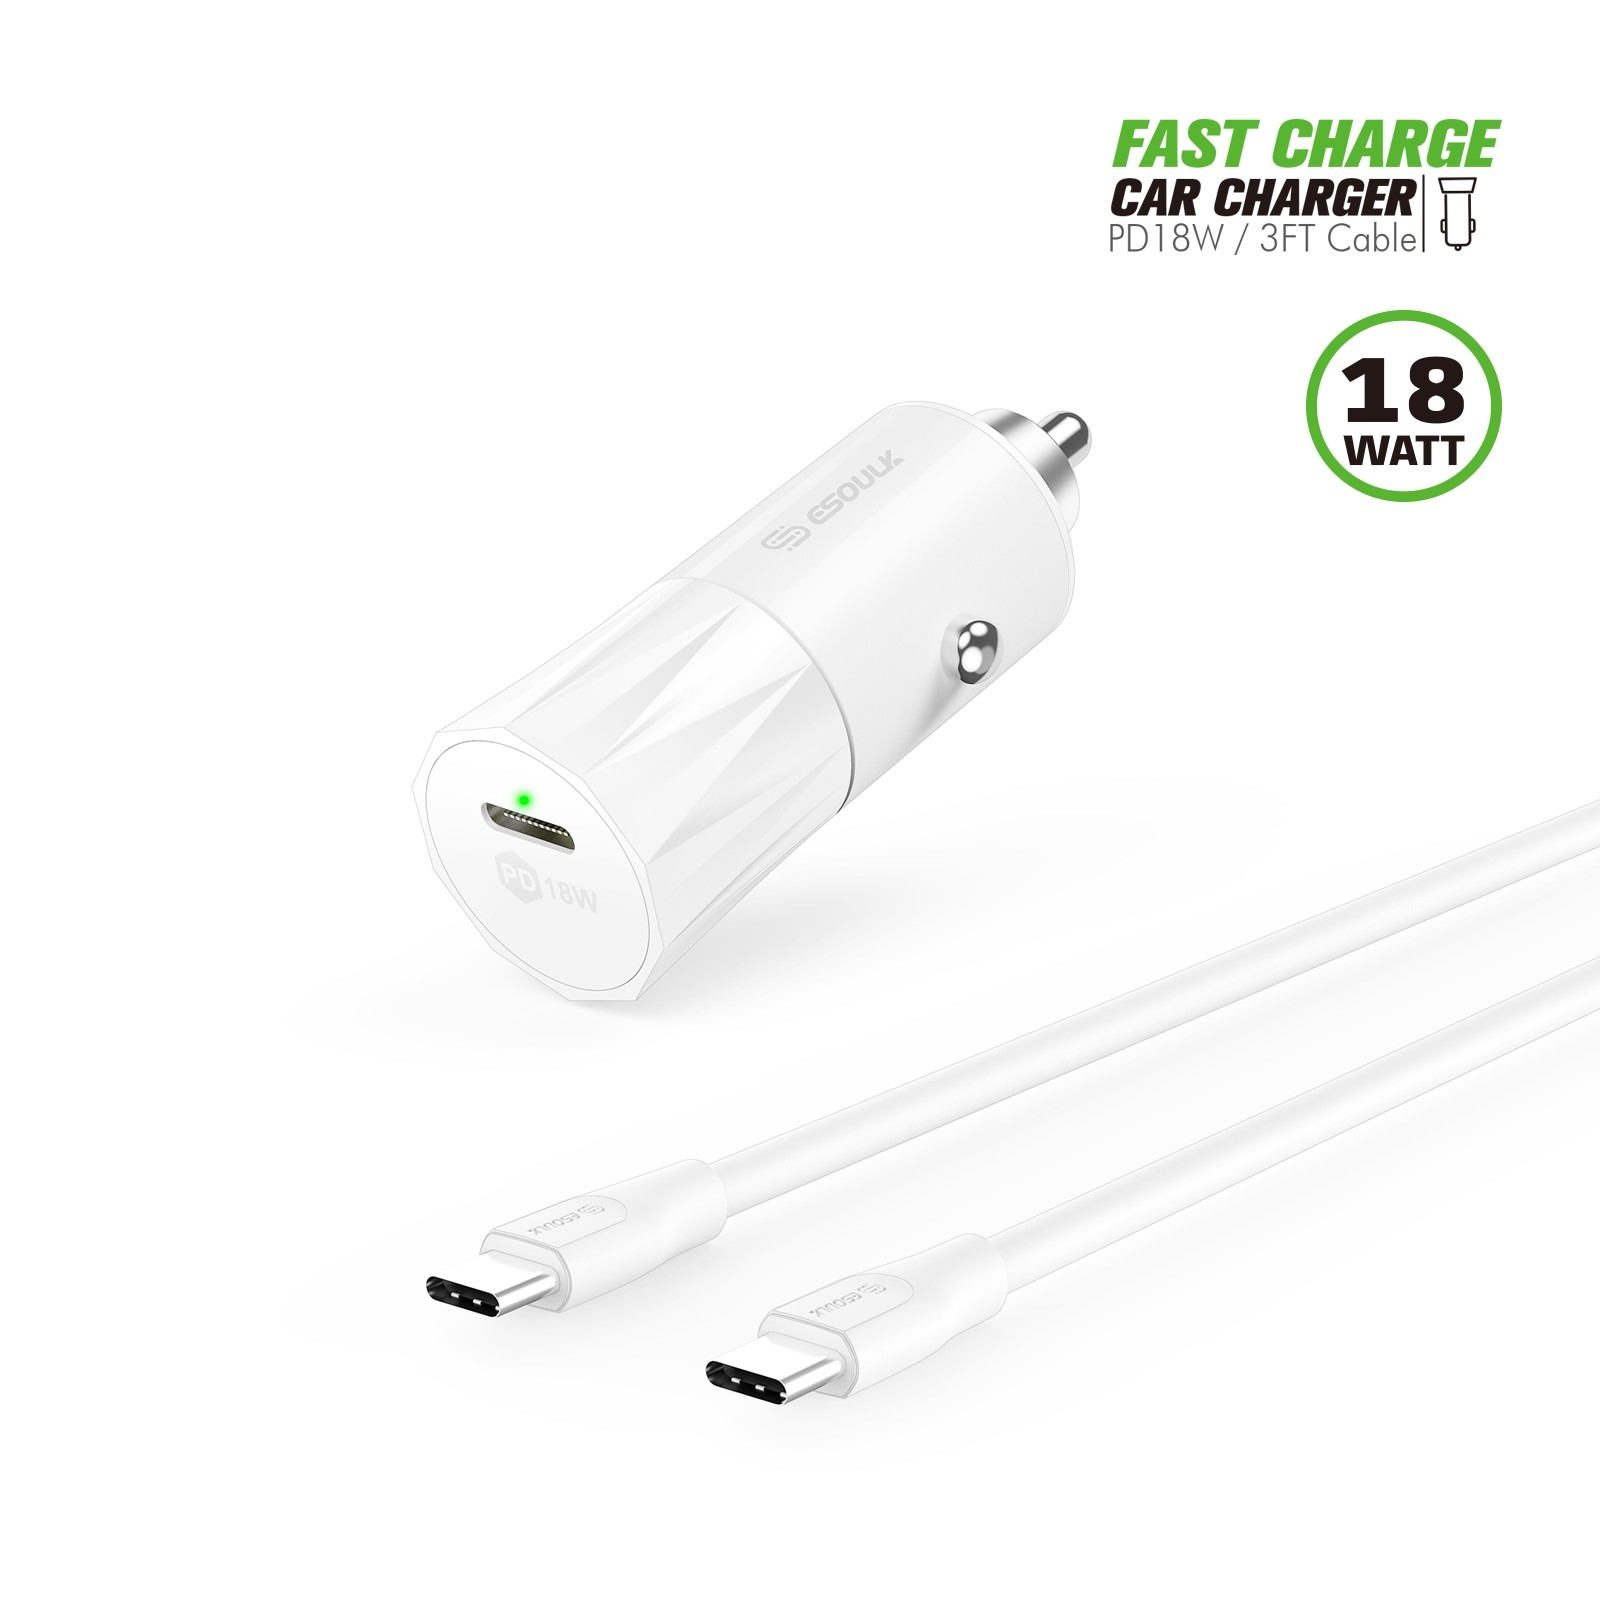 Ec36p Cc Wh 18w Pd Fast Charger Car Amp 3ft C To C Cable